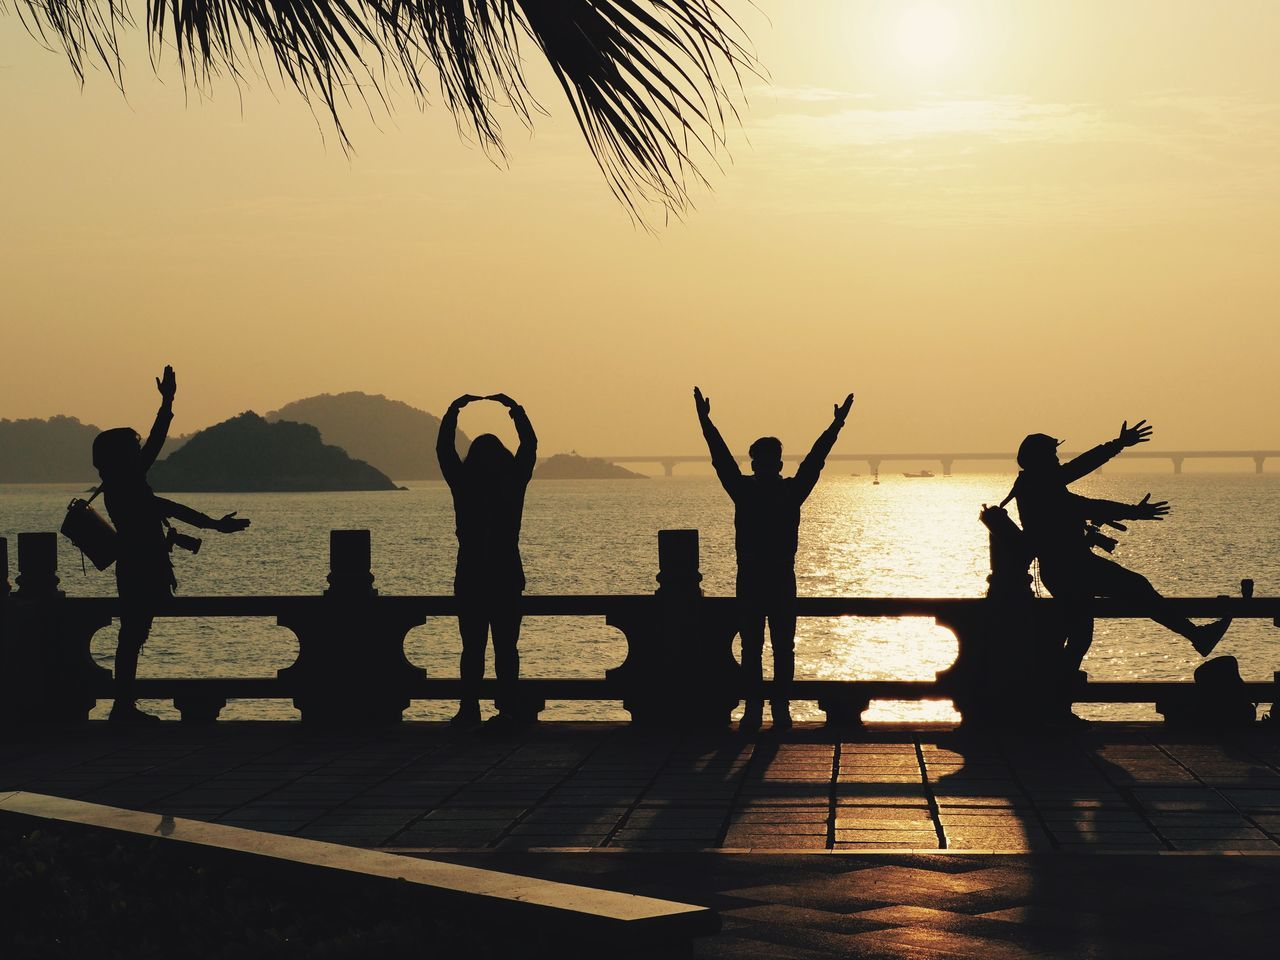 """LOVE""... Silhouette Lifestyles Men Water Real People Sea Mountain Nature Standing Outdoors Scenics Beauty In Nature Sky One Person People Day Reflection Love Sunlight Sunset_collection Sunrise Zhuhai Sunrise Silhouette China Enjoy last Moment Sunrise of 2016 ""ThankYou All for Showing Love for Photography and sharings each Inpiring Photos! We Continue to Share Love for 2017."""